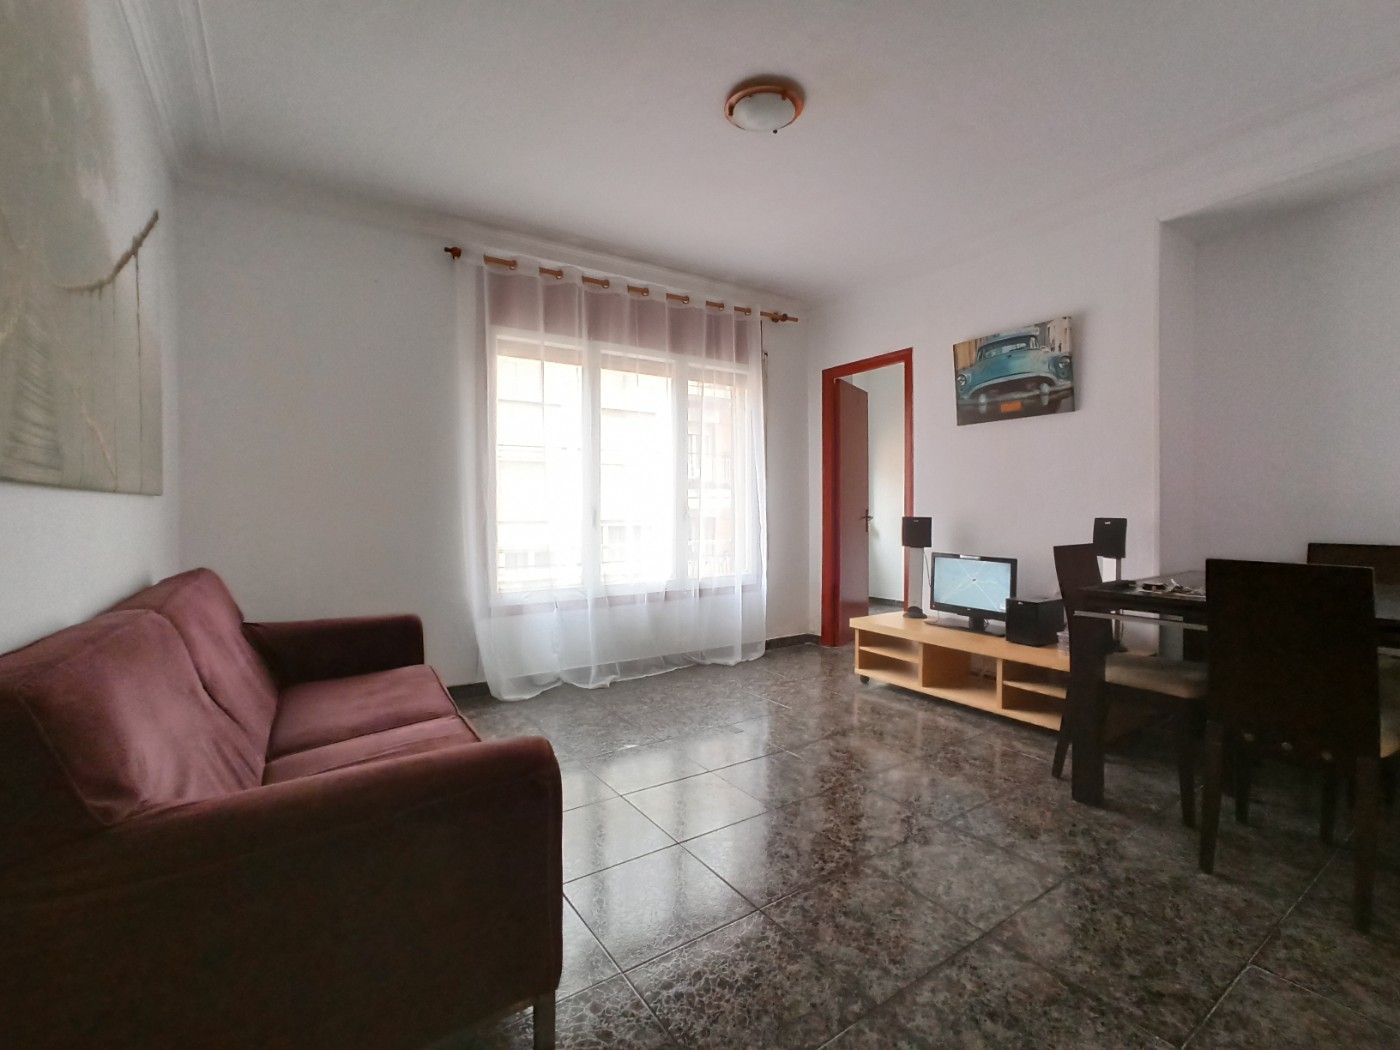 Appartement  Bases /abat oliva. Oportunitat centre!